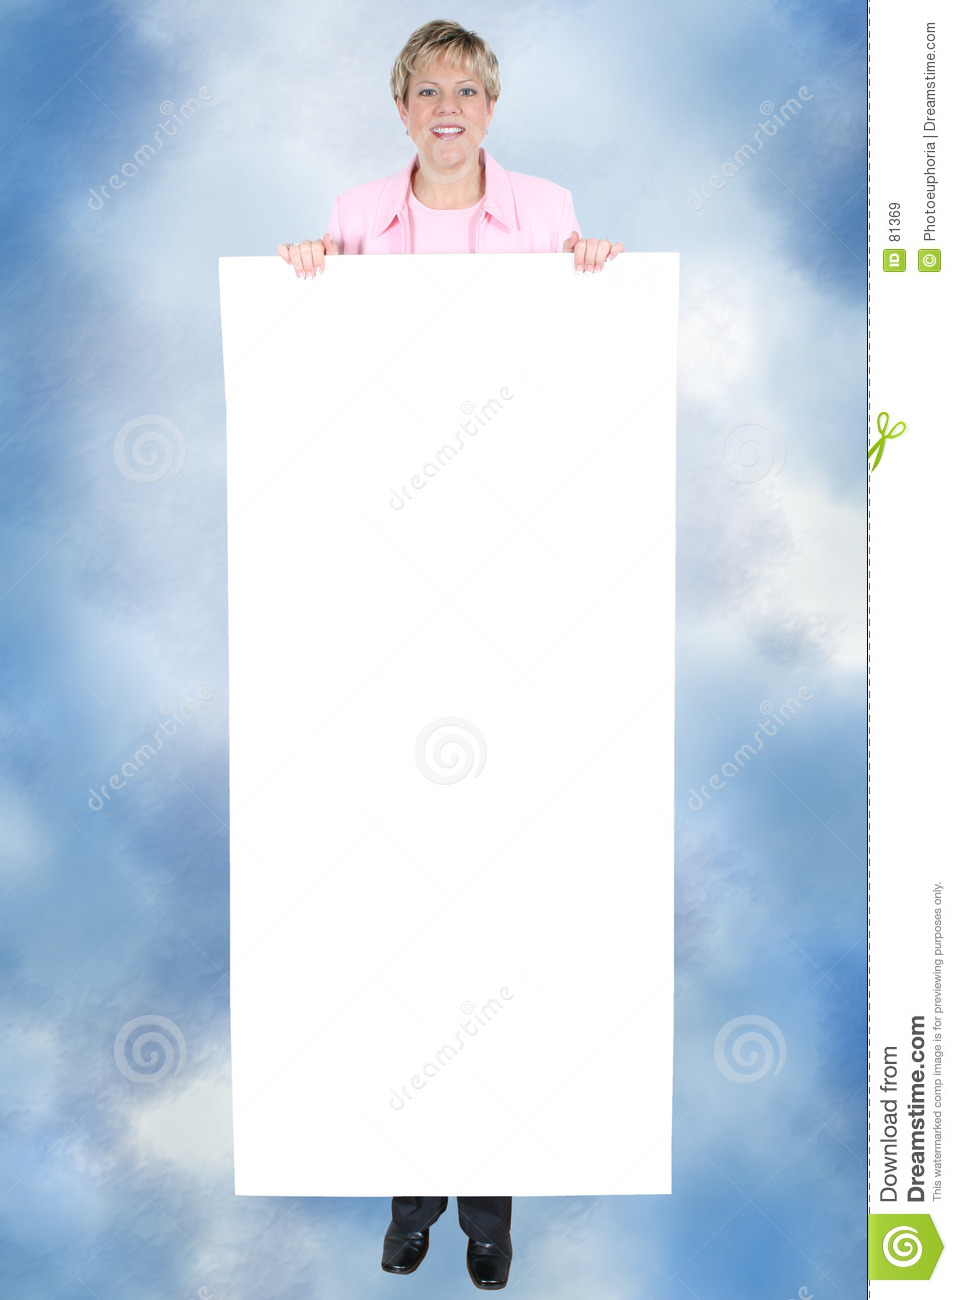 Blank fortext held sign smiling woman